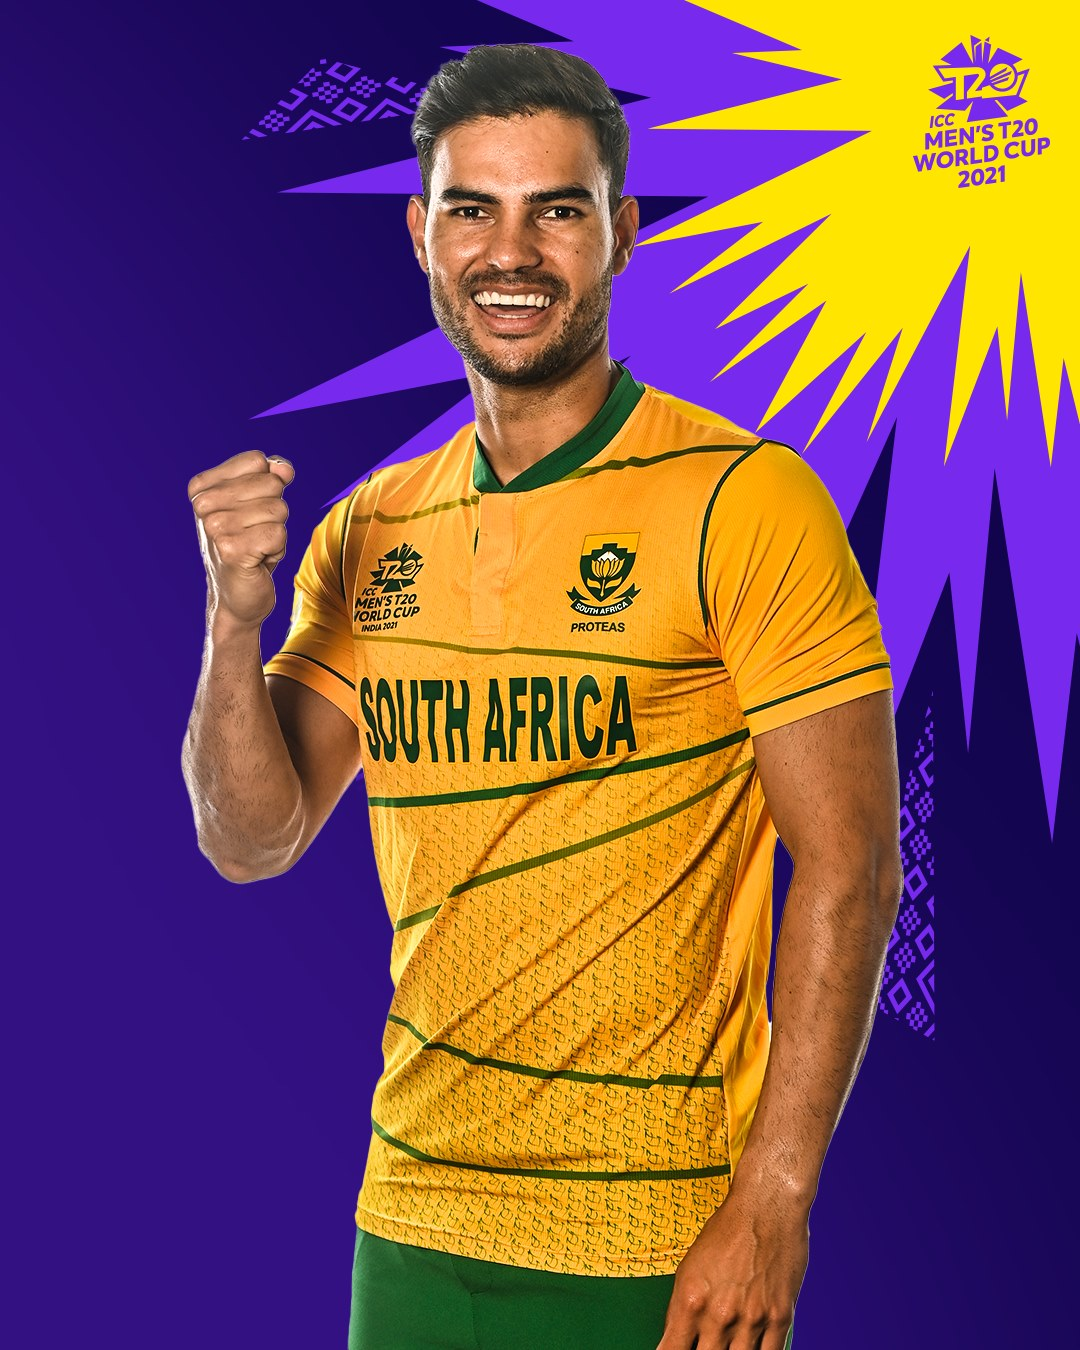 South African Team Kit for T20 World Cup 2021